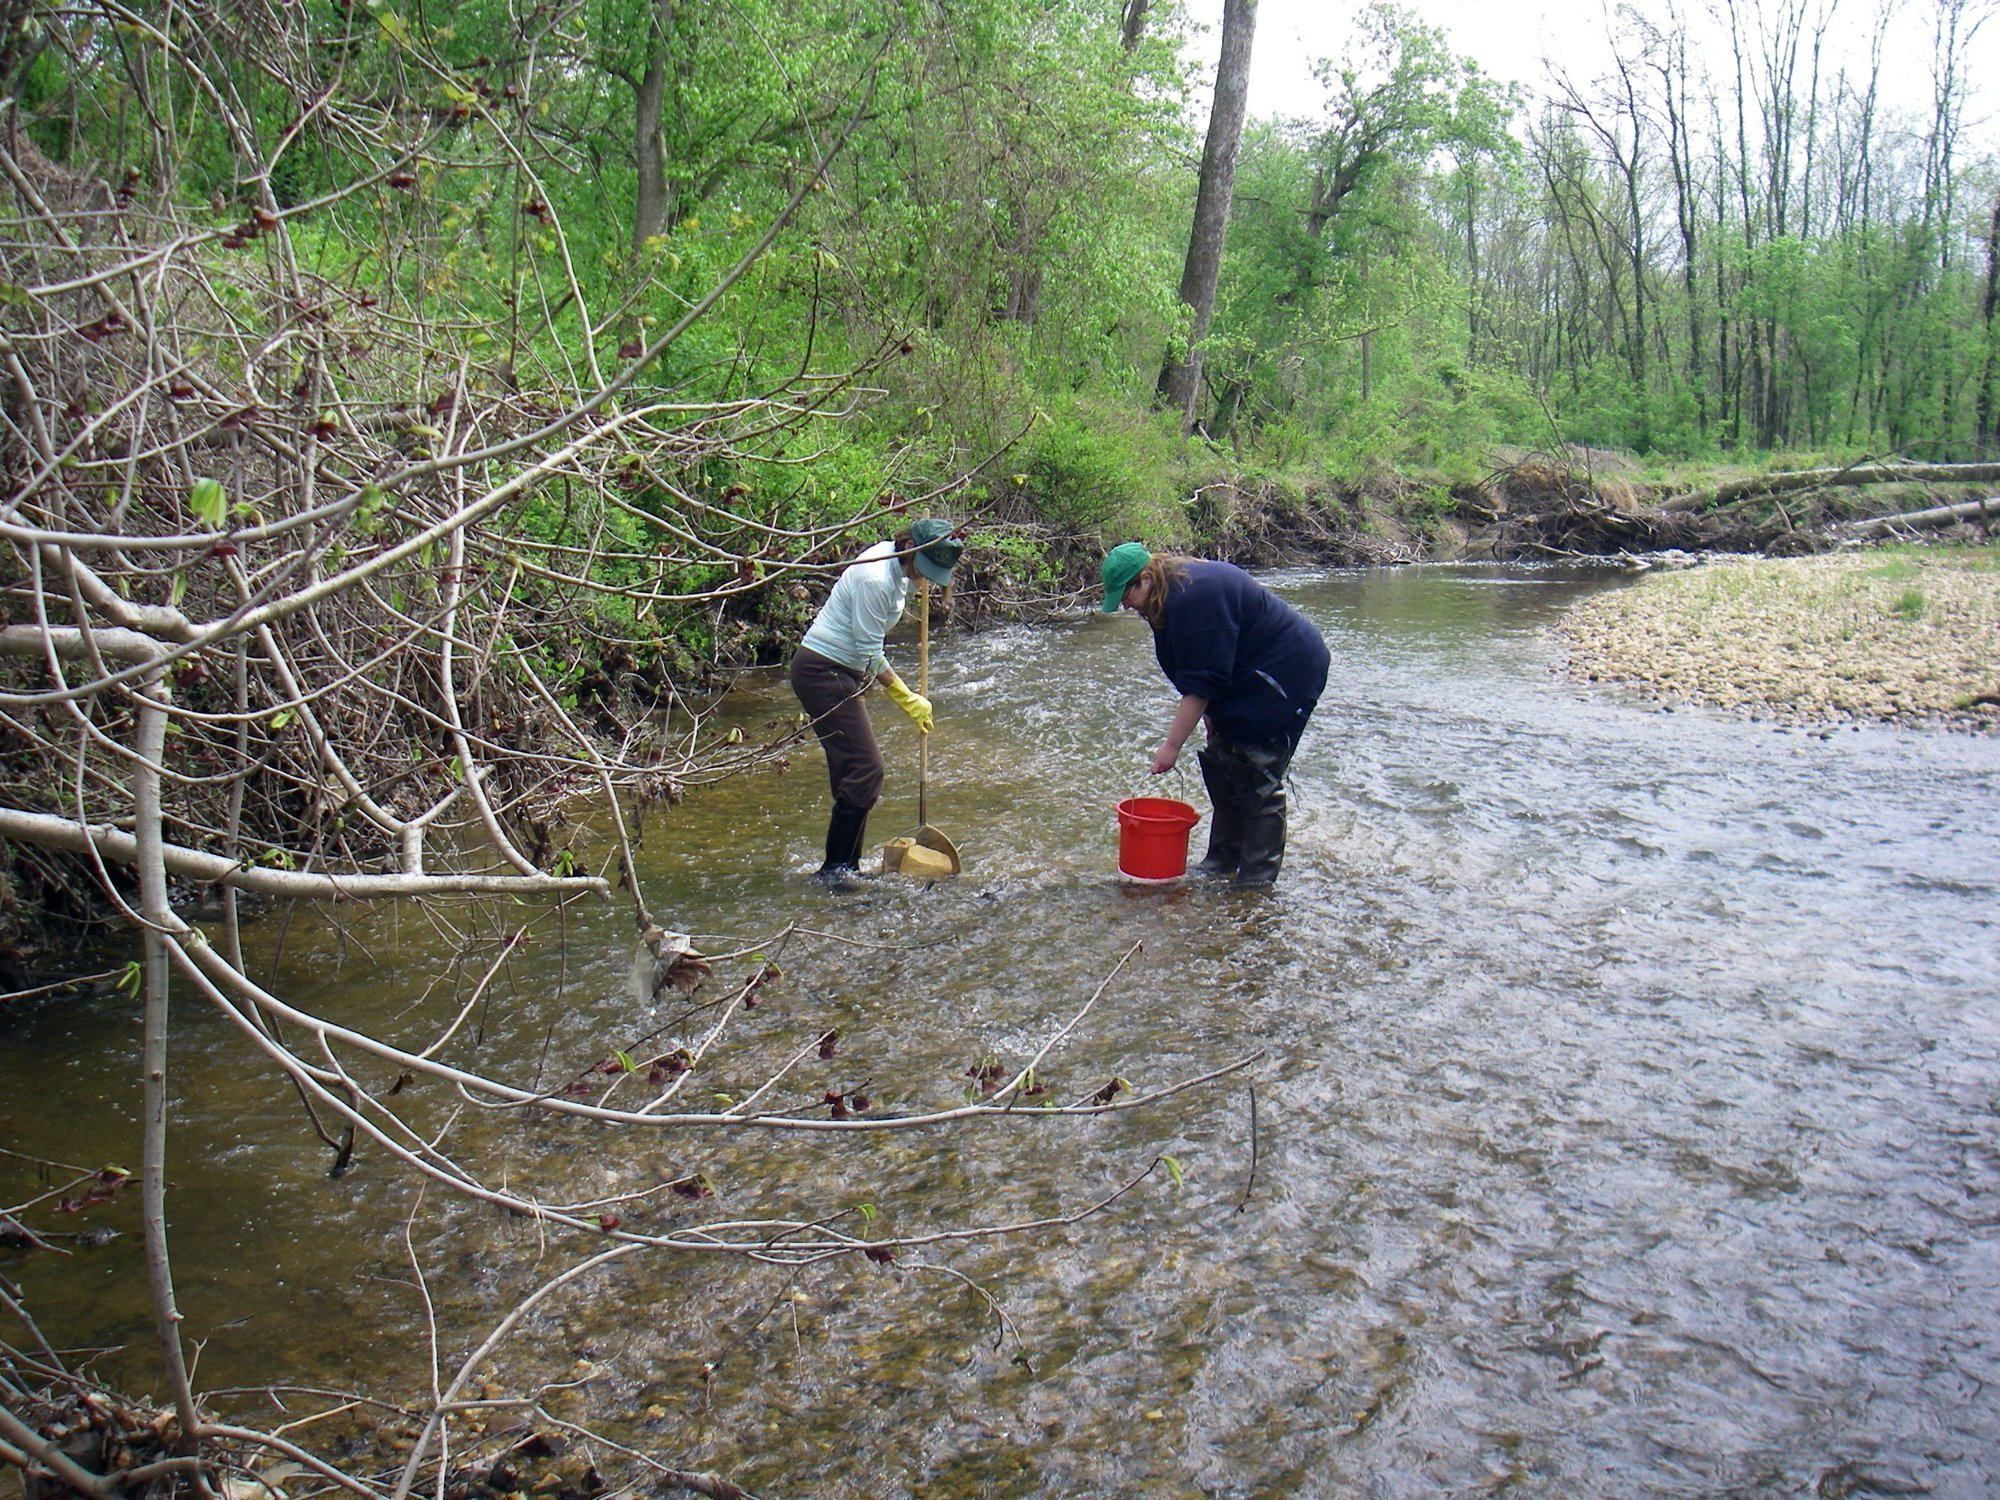 Seining rivers and streams to collect macroinvertabrates